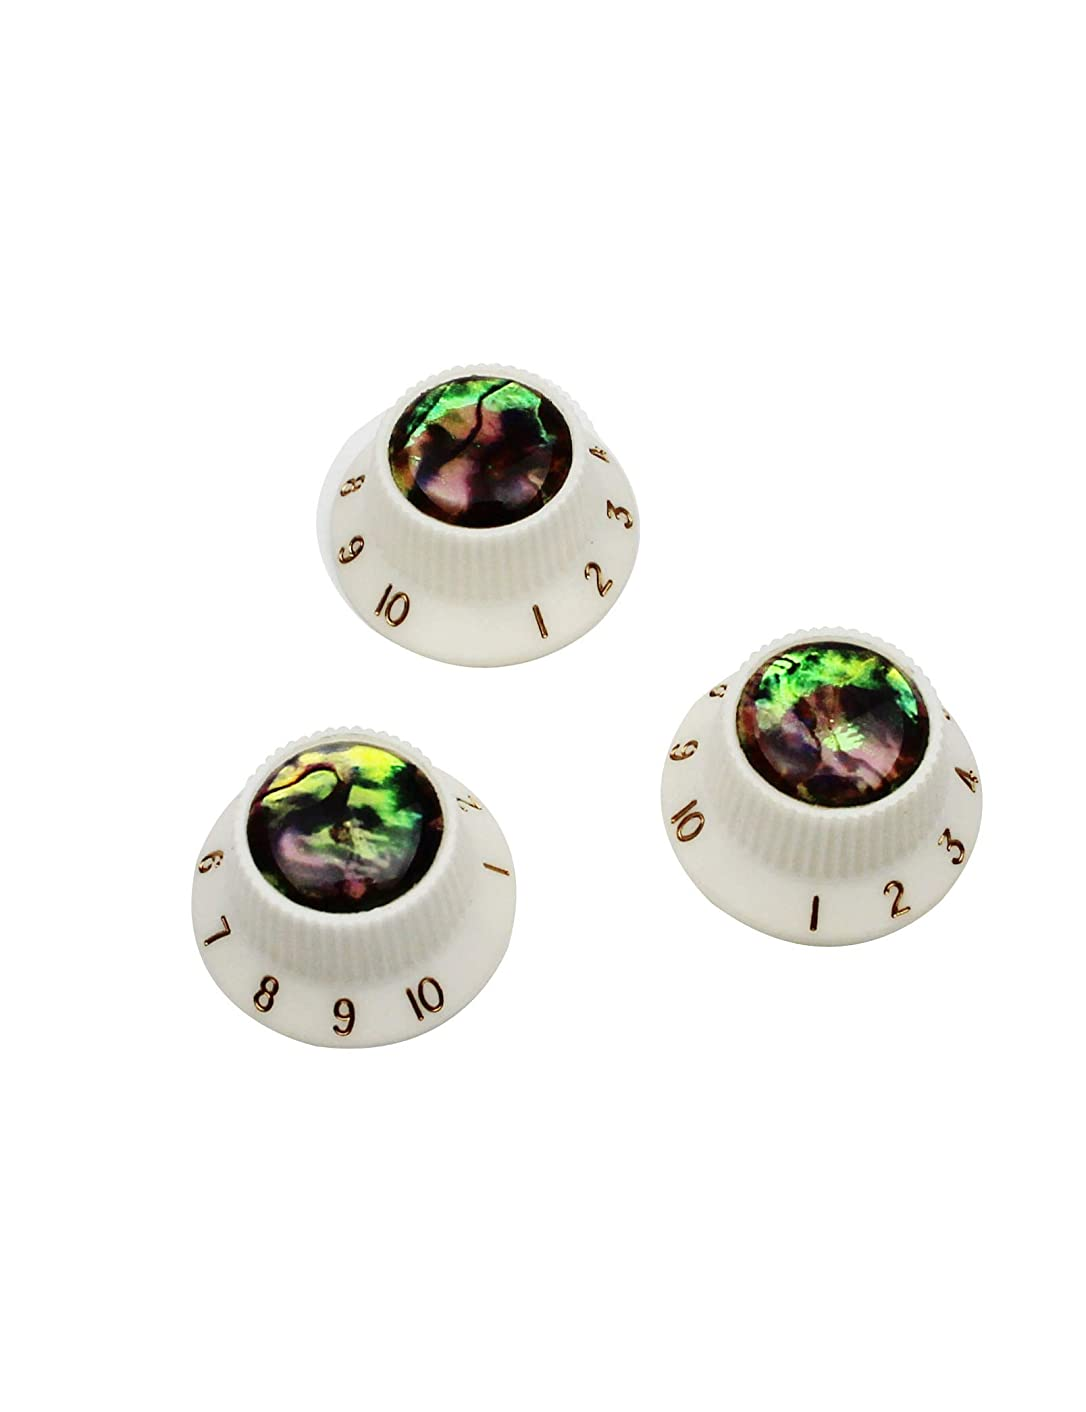 """Guyker 3Pcs Guitar Speed Control Knobs for 6mm (0.24"""") Dia. Shaft Pots - Abalone Top Volume and Tone Buttons Replacement Parts for Precision Electric Guitar (White)"""